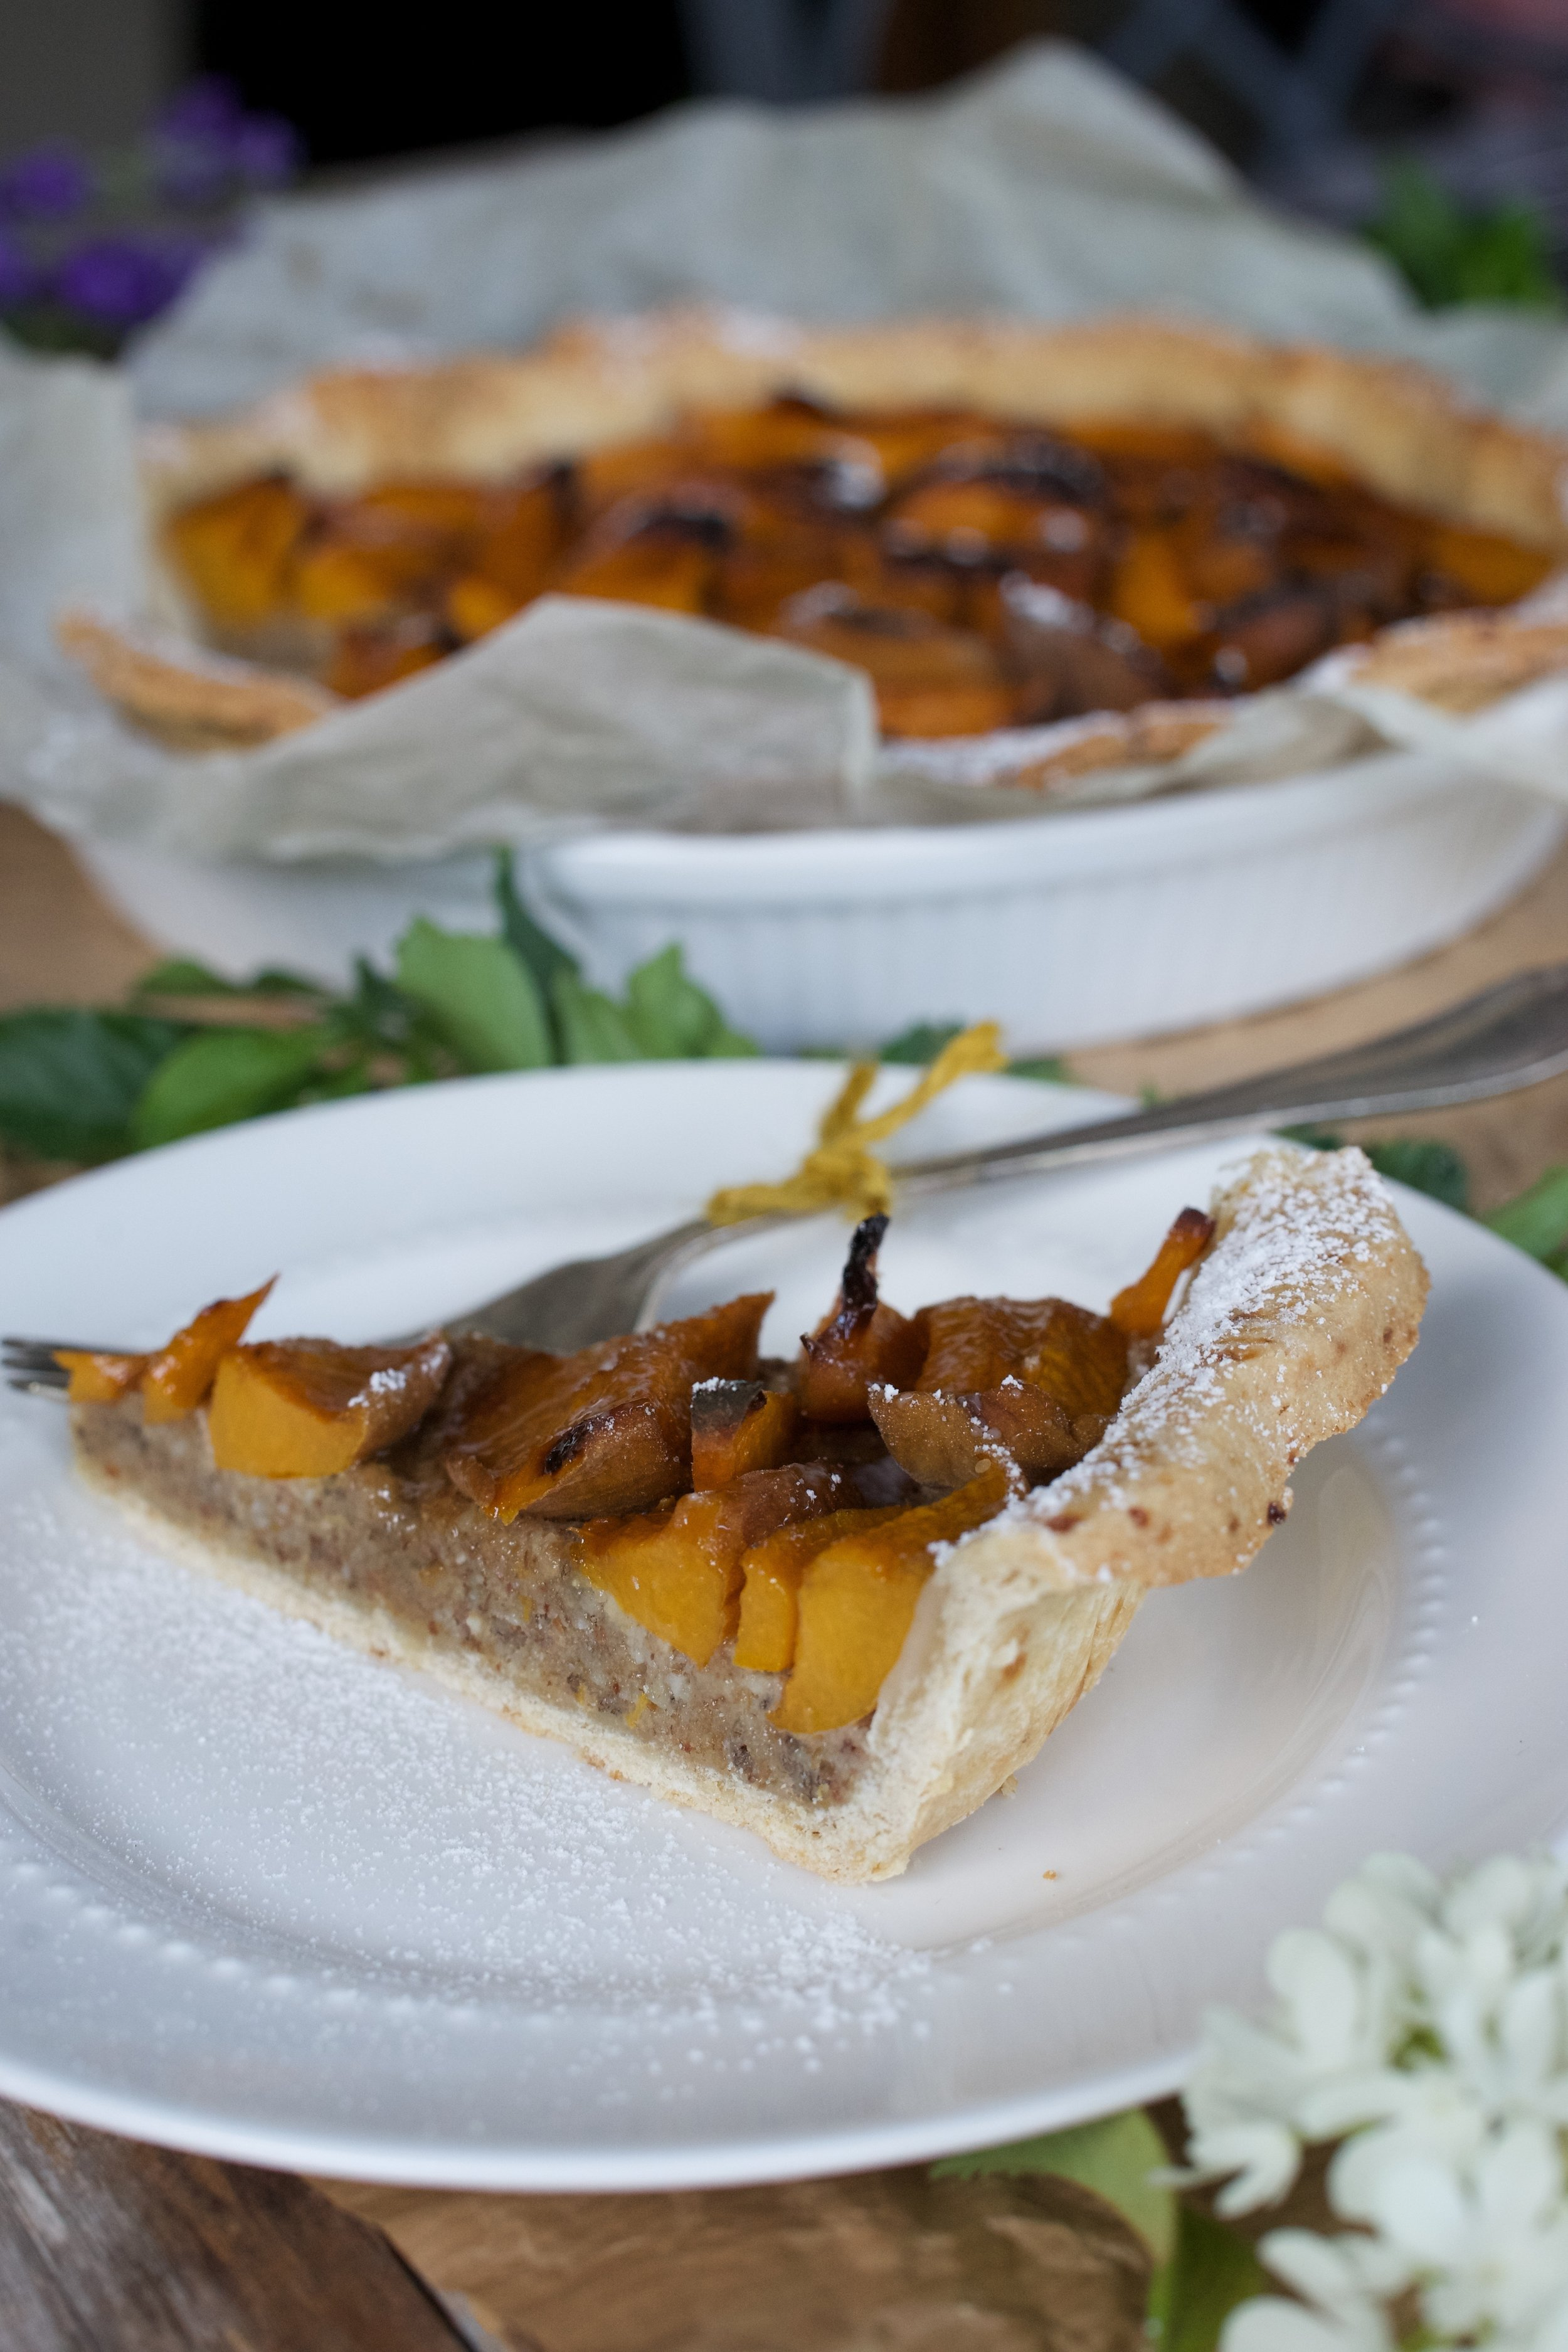 Peachy Keen Peach Pie